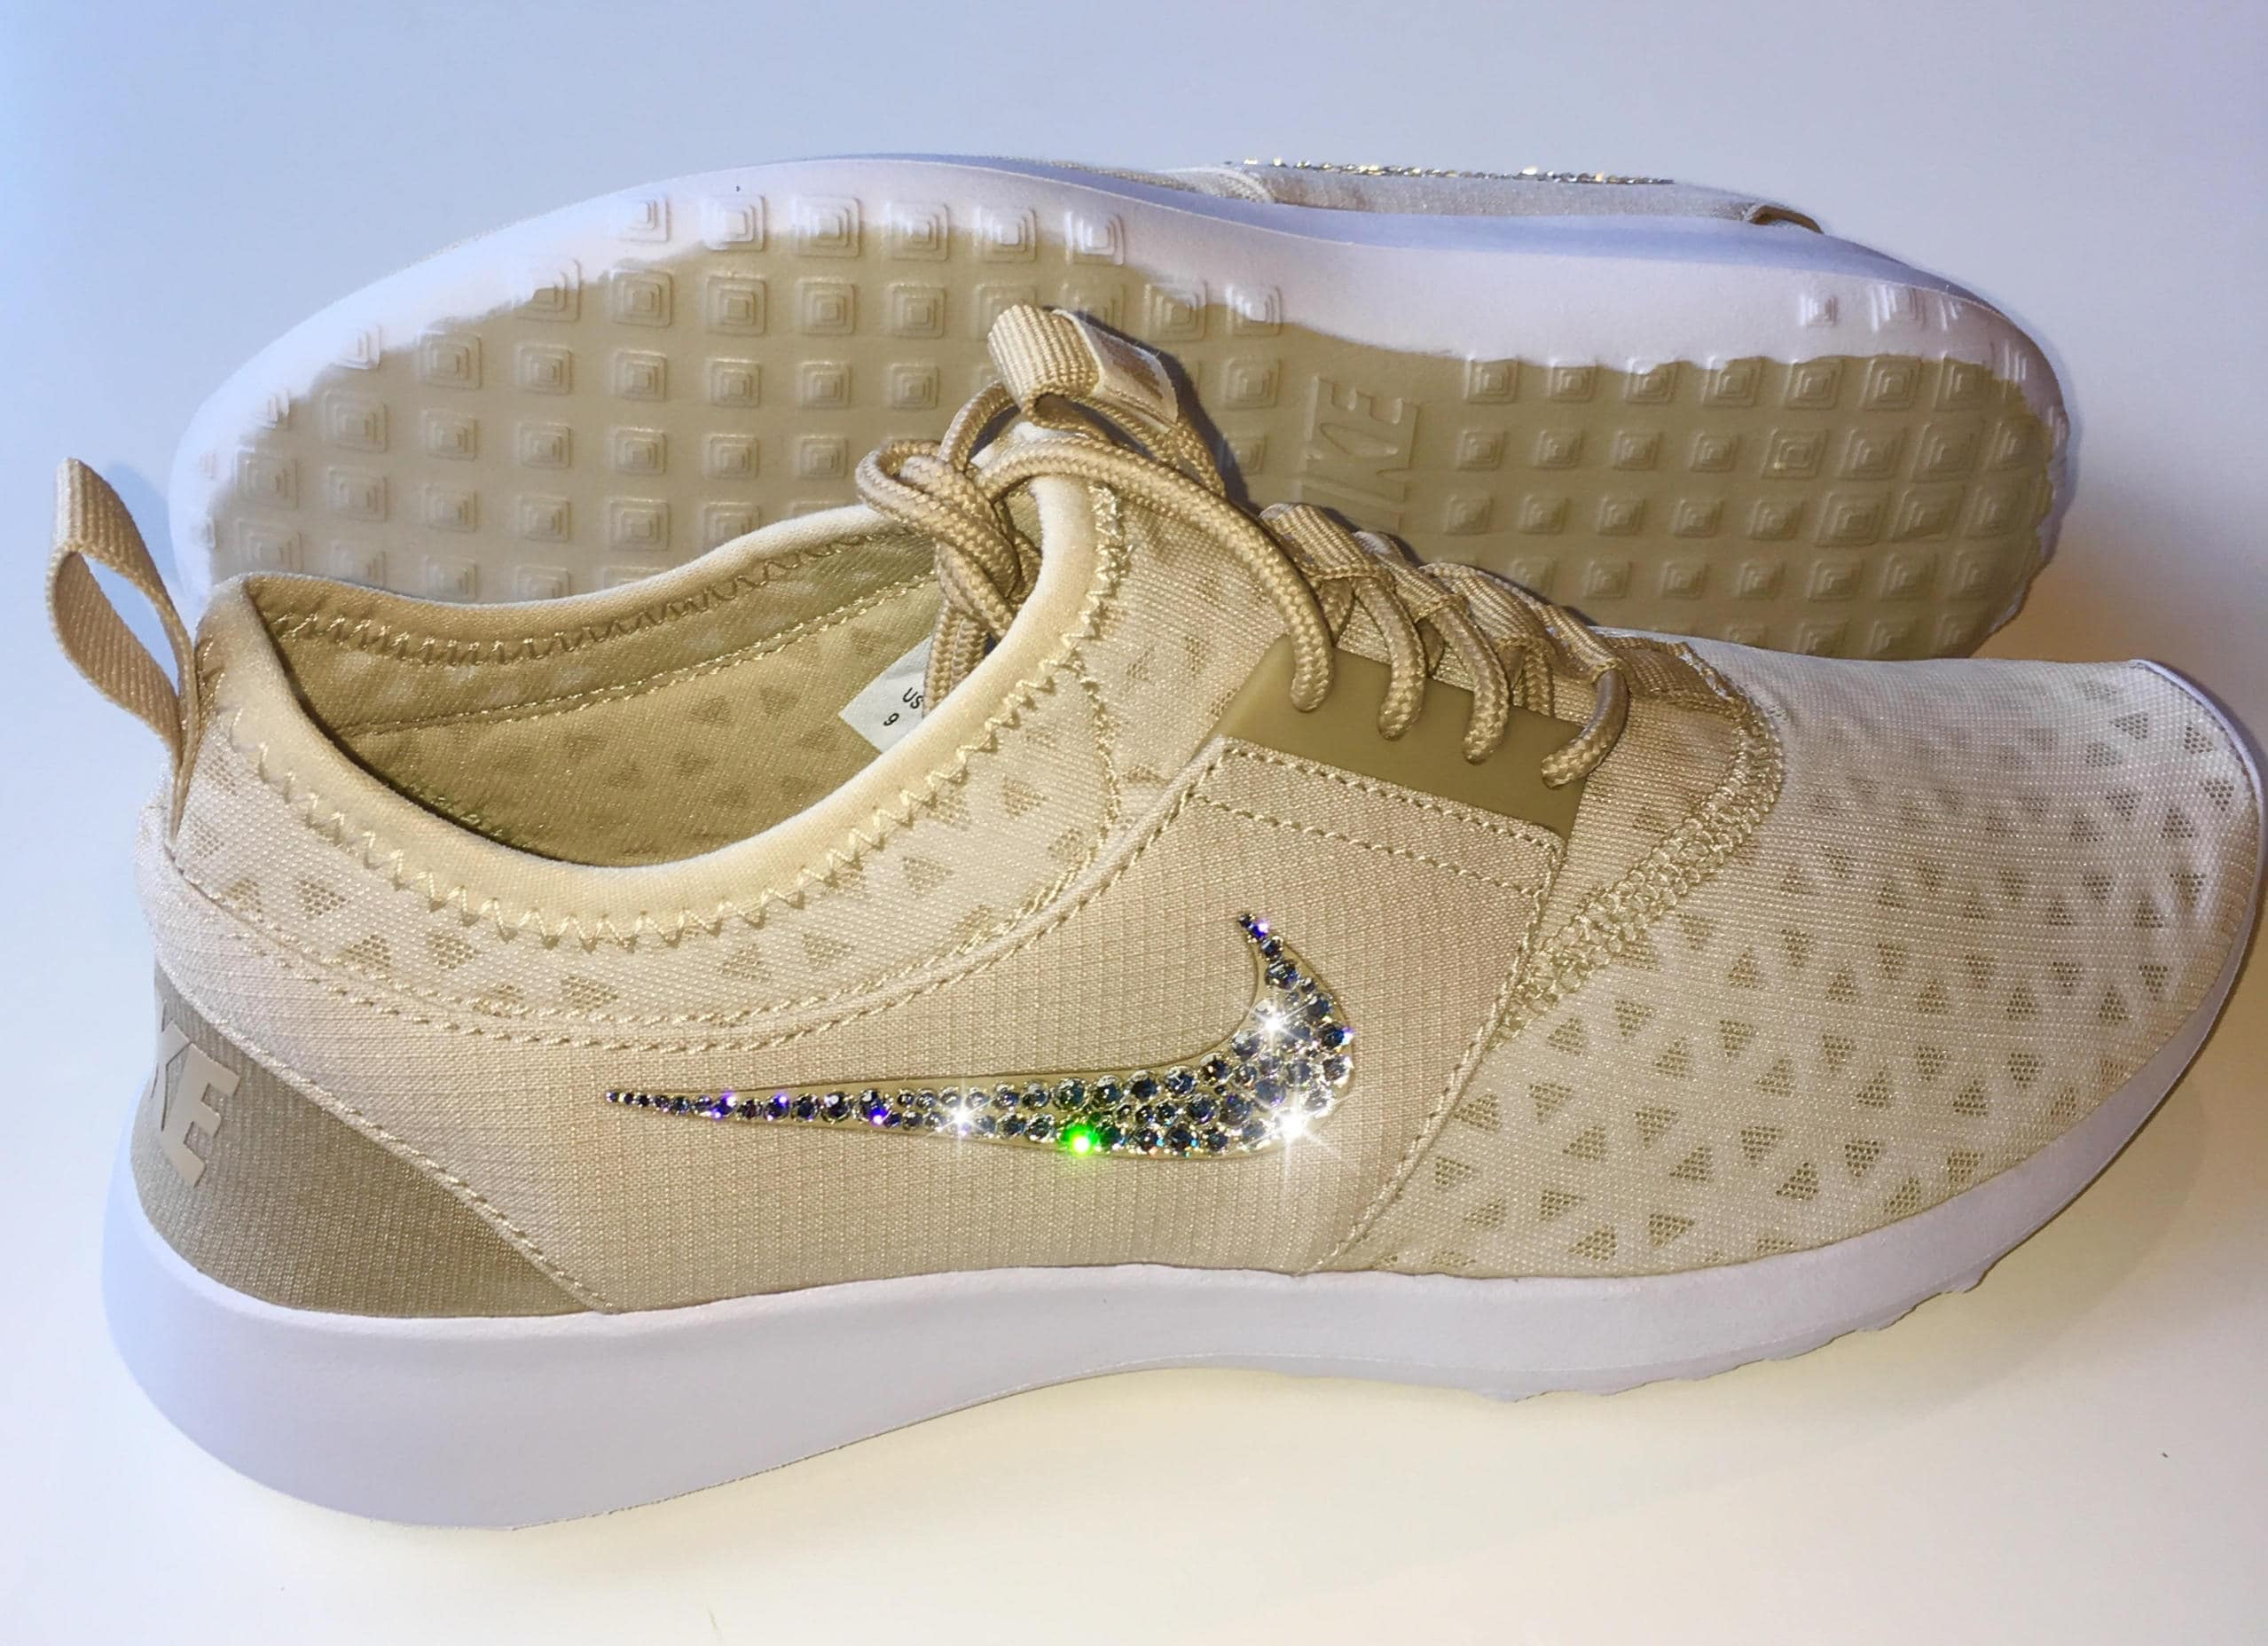 Clearance Nude Bling Nike Shoes With Swarovski Crystals  Etsy-6732